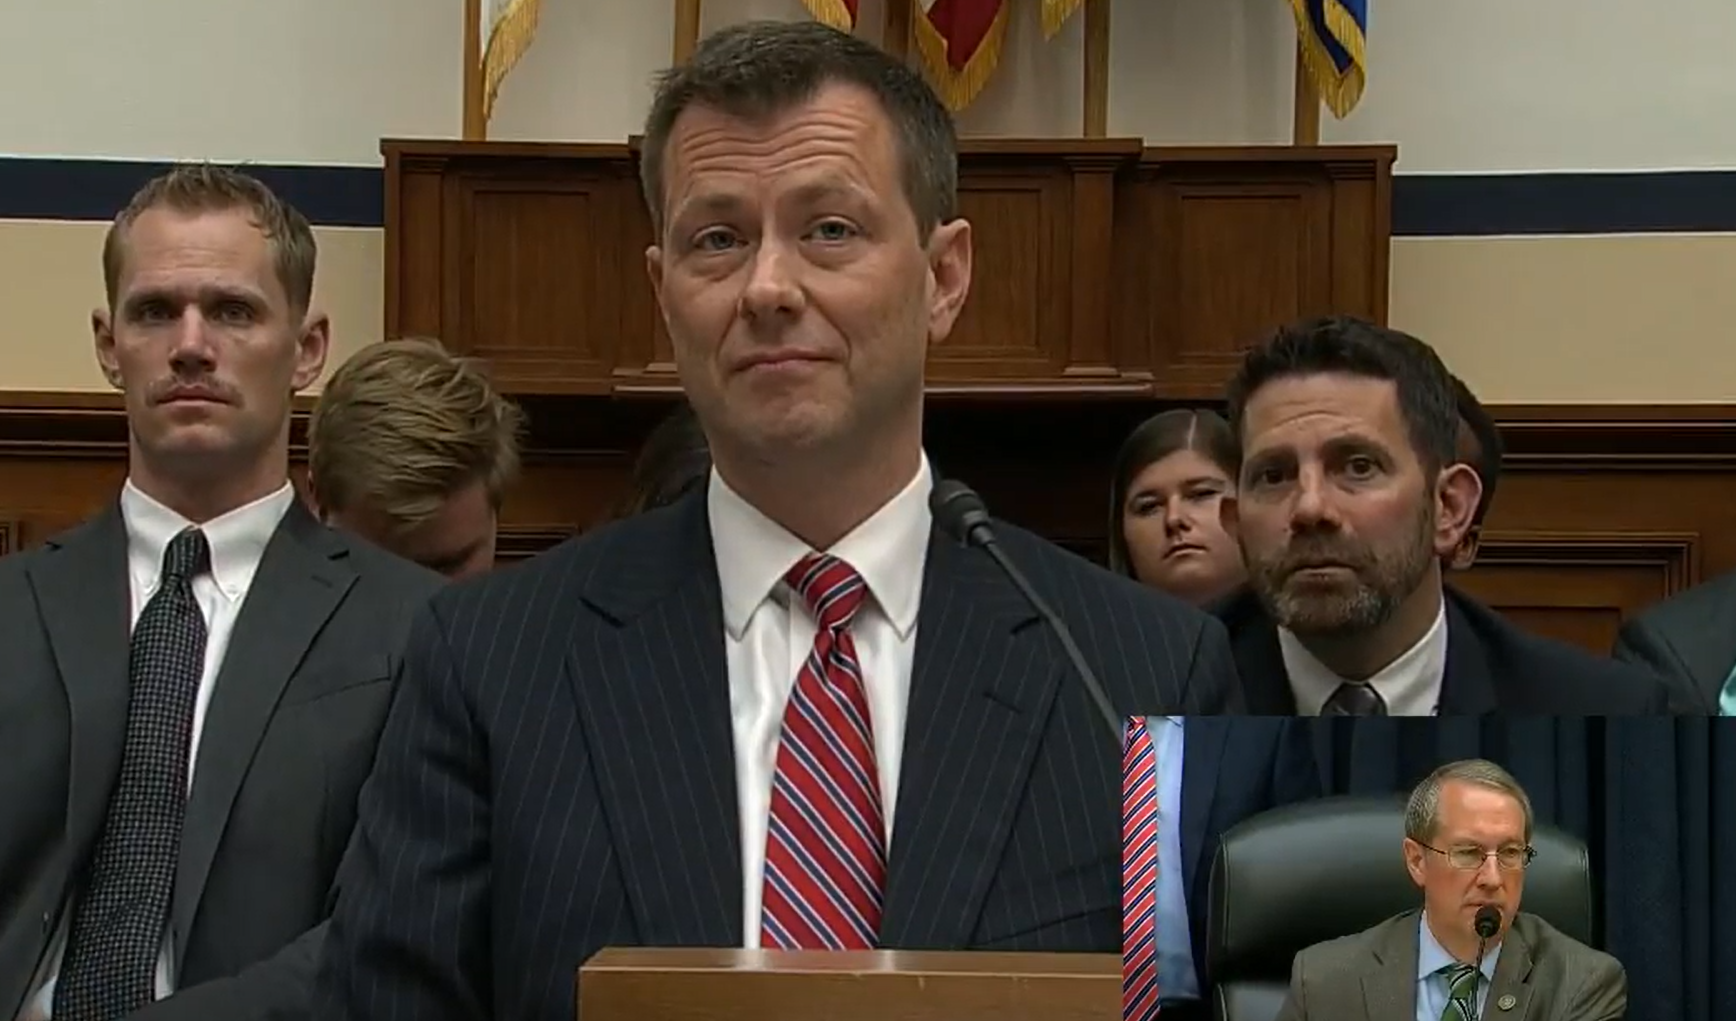 (WATCH LIVE) FBI's Peter Strzok Testifies on Anti-Trump Bias Before House Panel